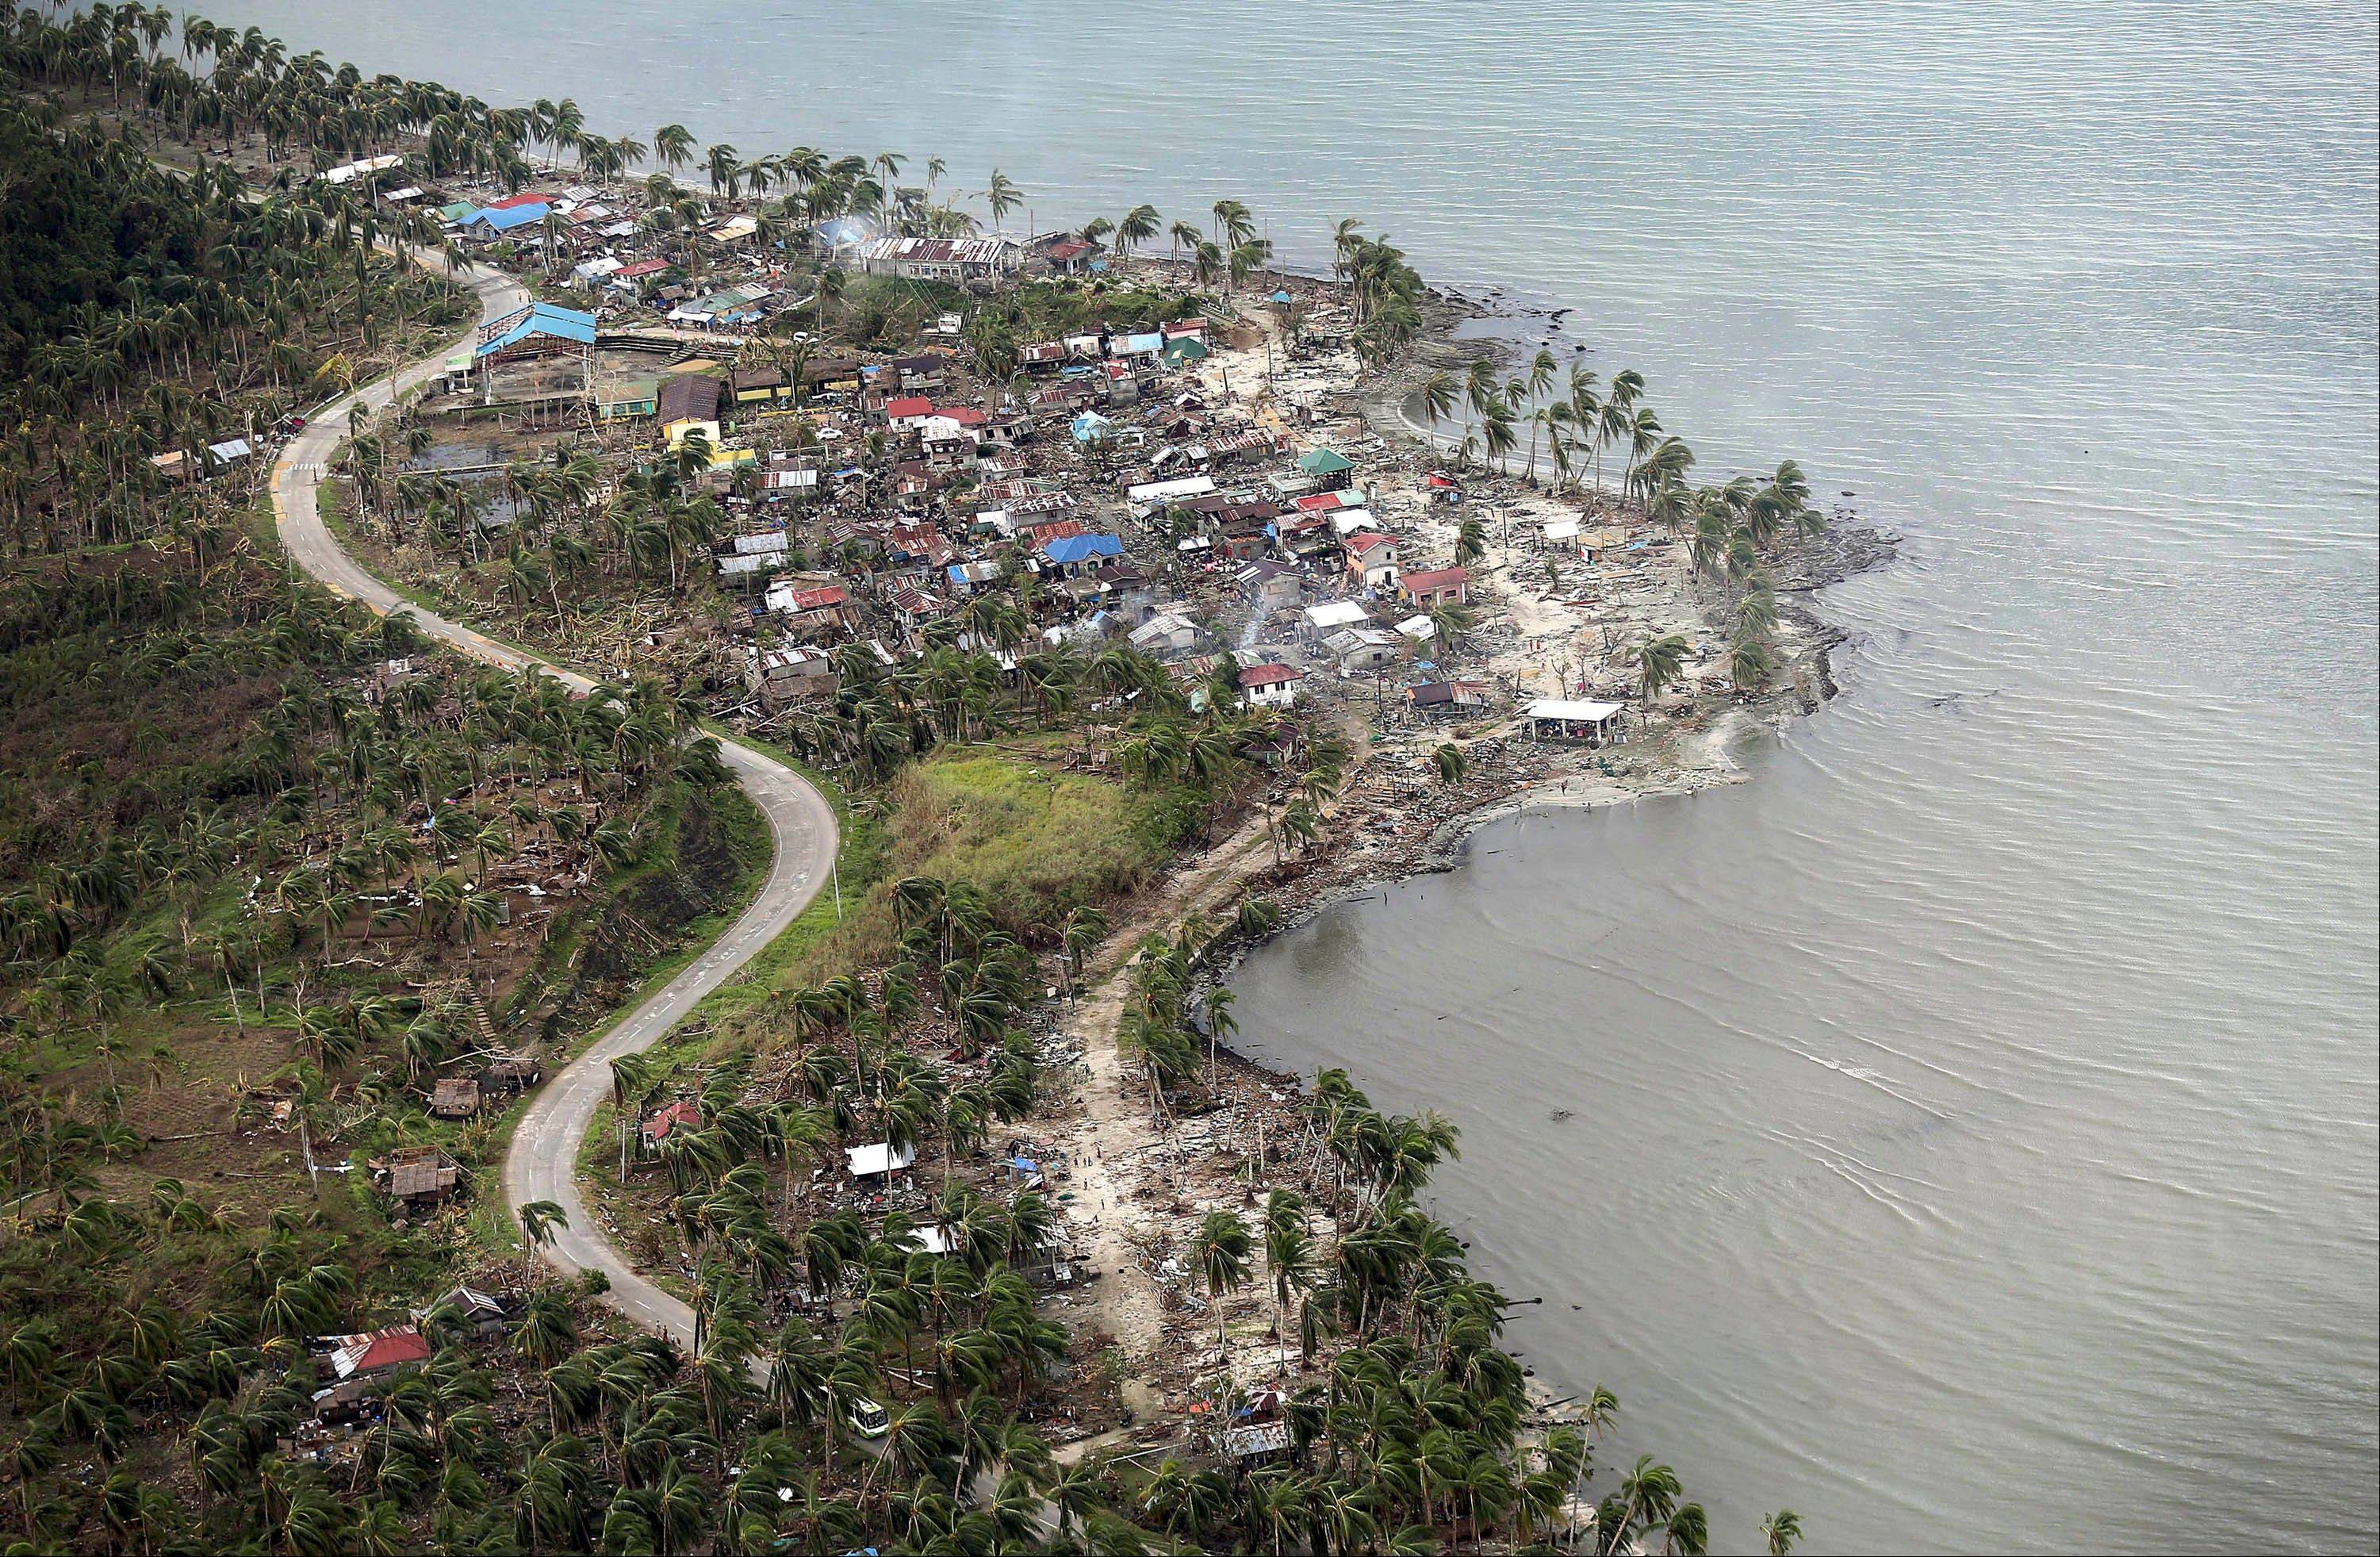 An aerial view shows the coast affected by Typhoon Haiyan Thursday, Nov. 14, 2013 in Hernani, eastern Samar, central Philippines. Typhoon Haiyan, one of the strongest storms on record, slammed into 6 central Philippine islands on Friday leaving a wide swath of destruction and thousands of people displaced.